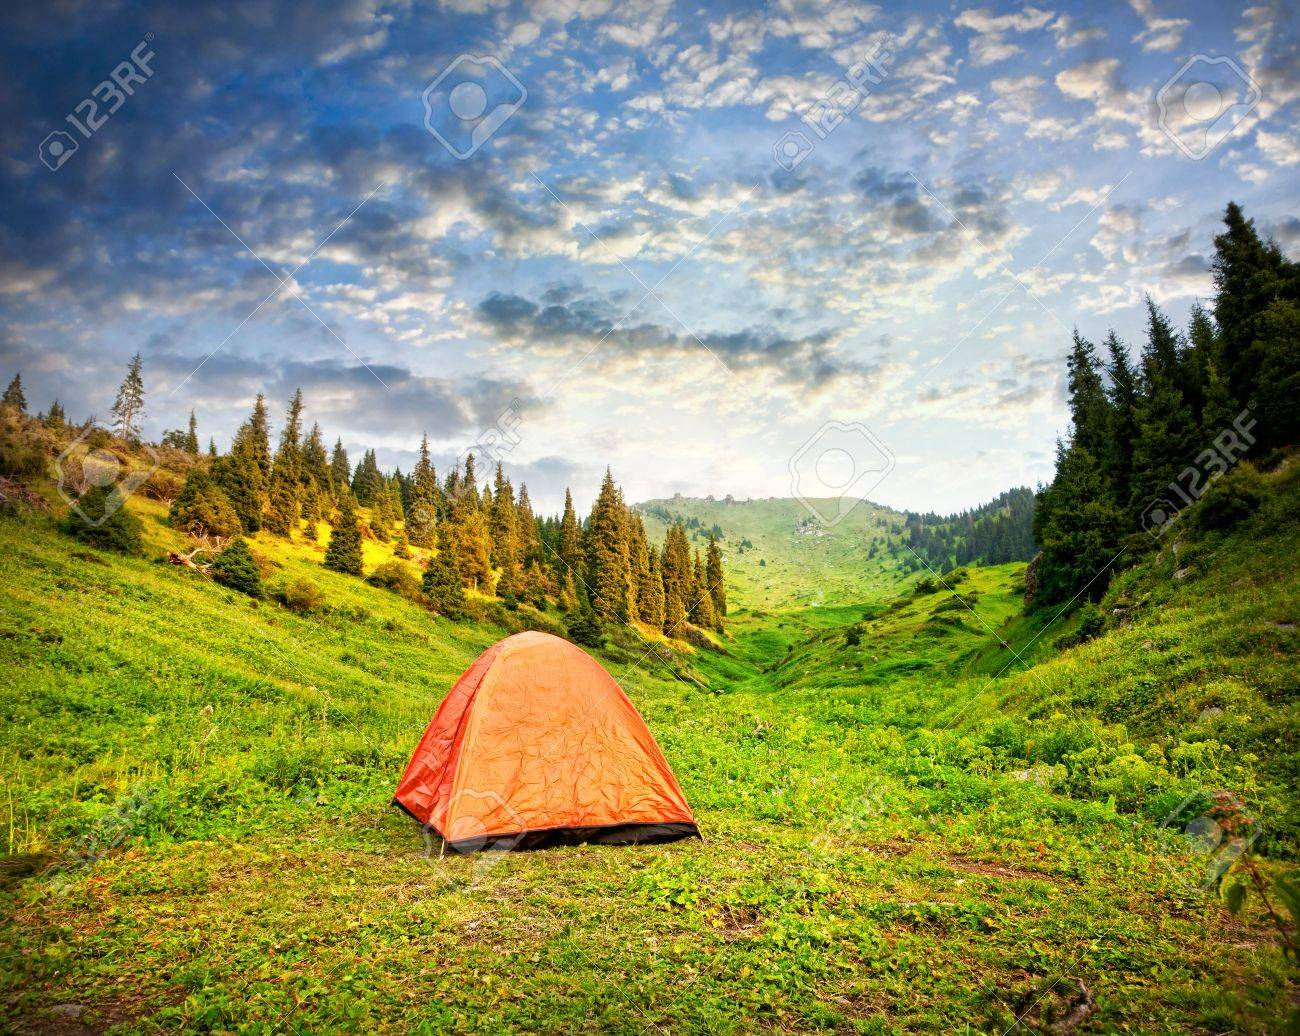 Tourist orange tent in mountains in Kazakhstan Stock Photo - 14508435 & Tourist Orange Tent In Mountains In Kazakhstan Stock Photo ...